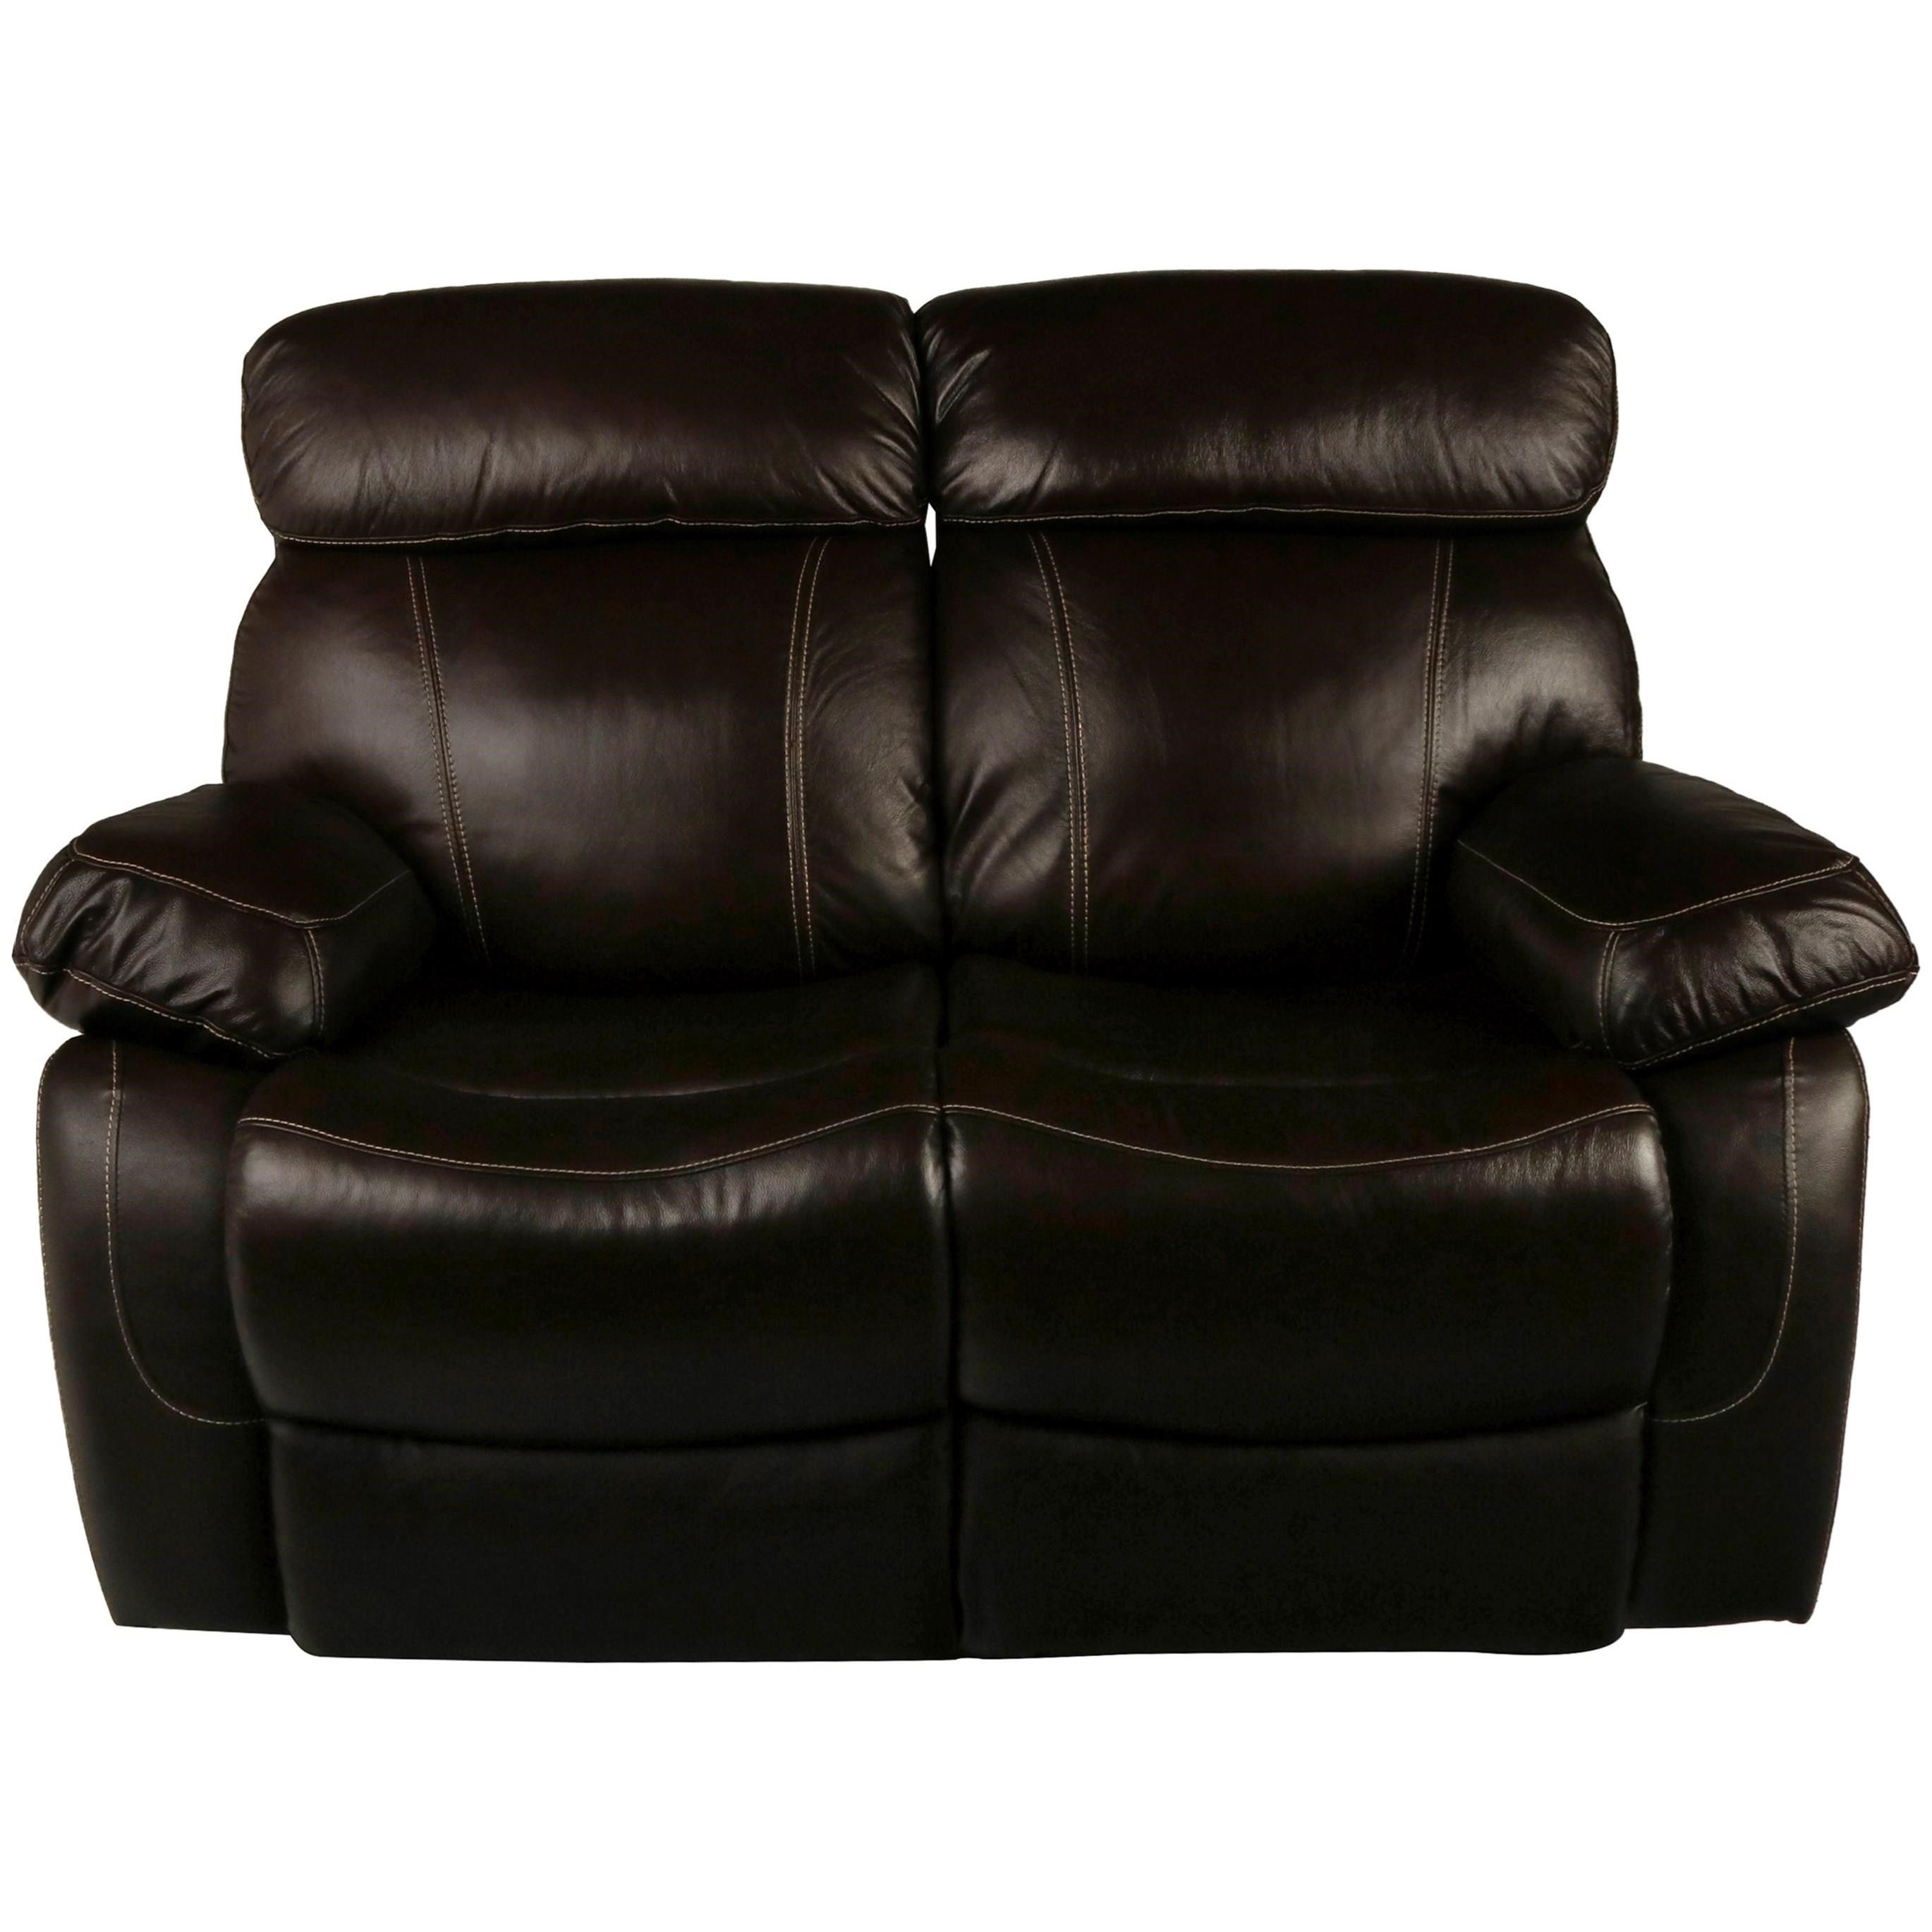 Dante Leather Power Reclining Loveseat by New Classic at Wilcox Furniture